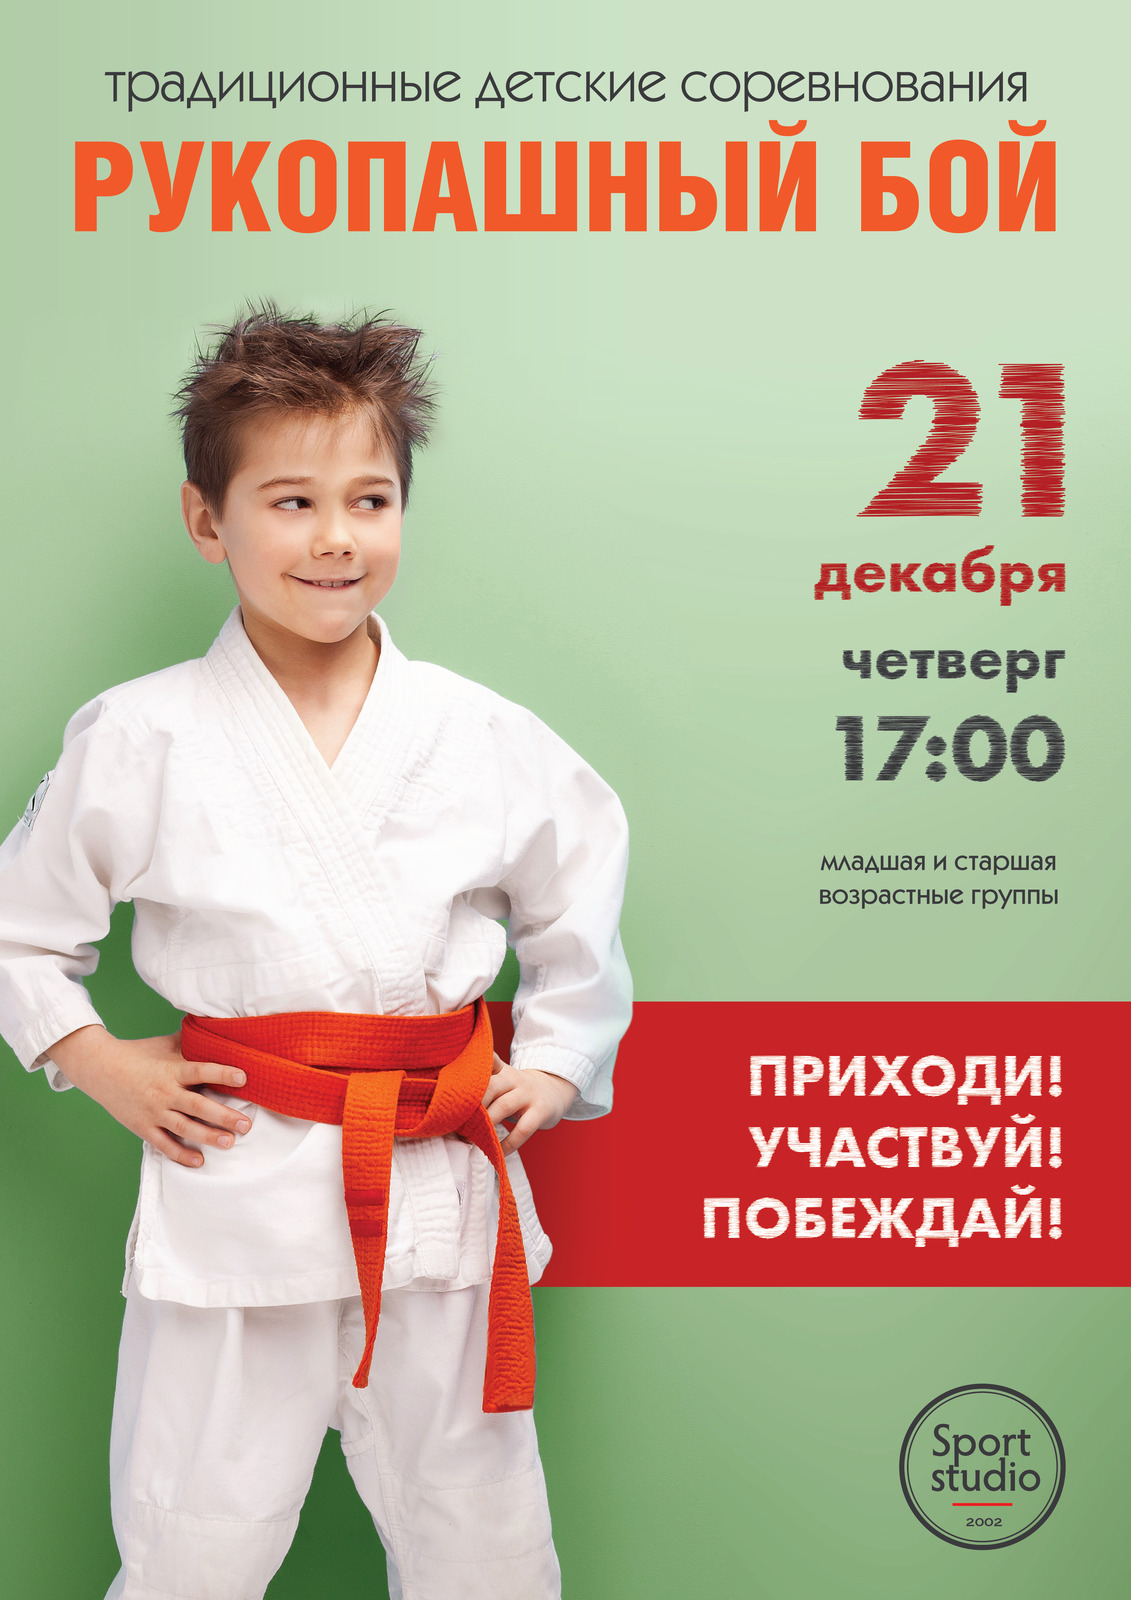 Hand-to-hand fighting tournament for the youngest sportsmen